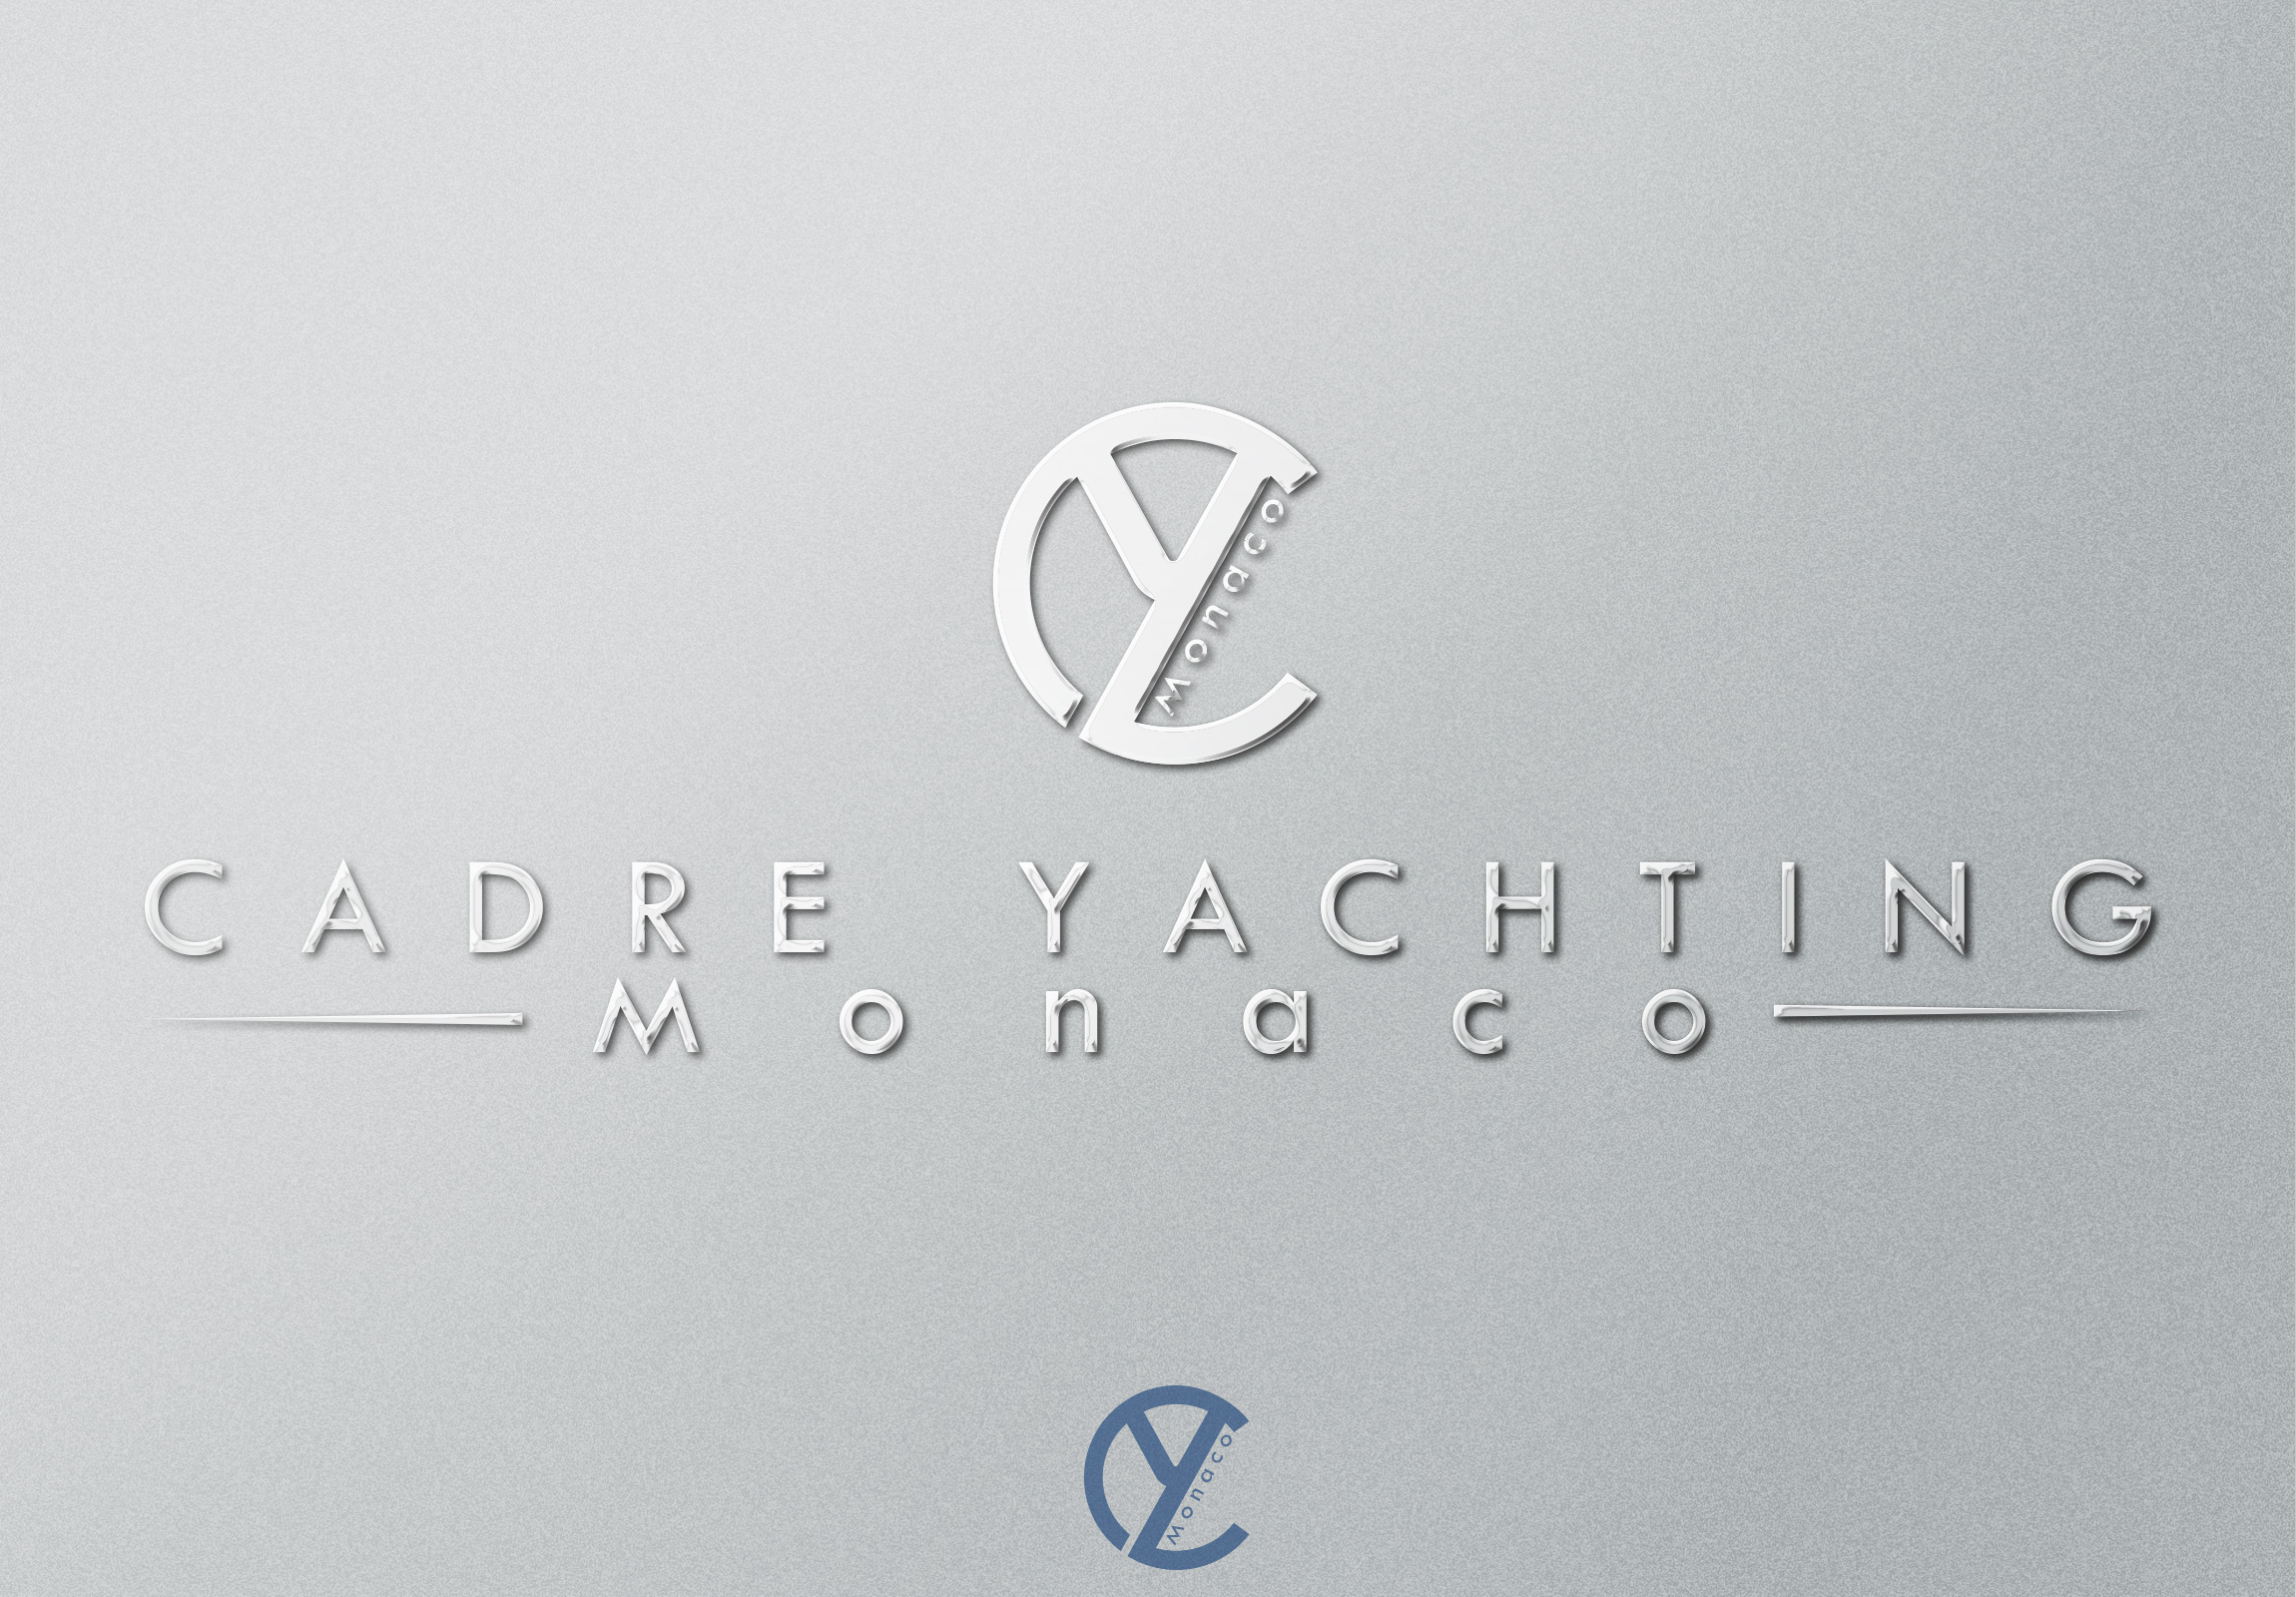 Logo Design by olii - Entry No. 342 in the Logo Design Contest New Logo Design for Cadre Yachting Monaco.